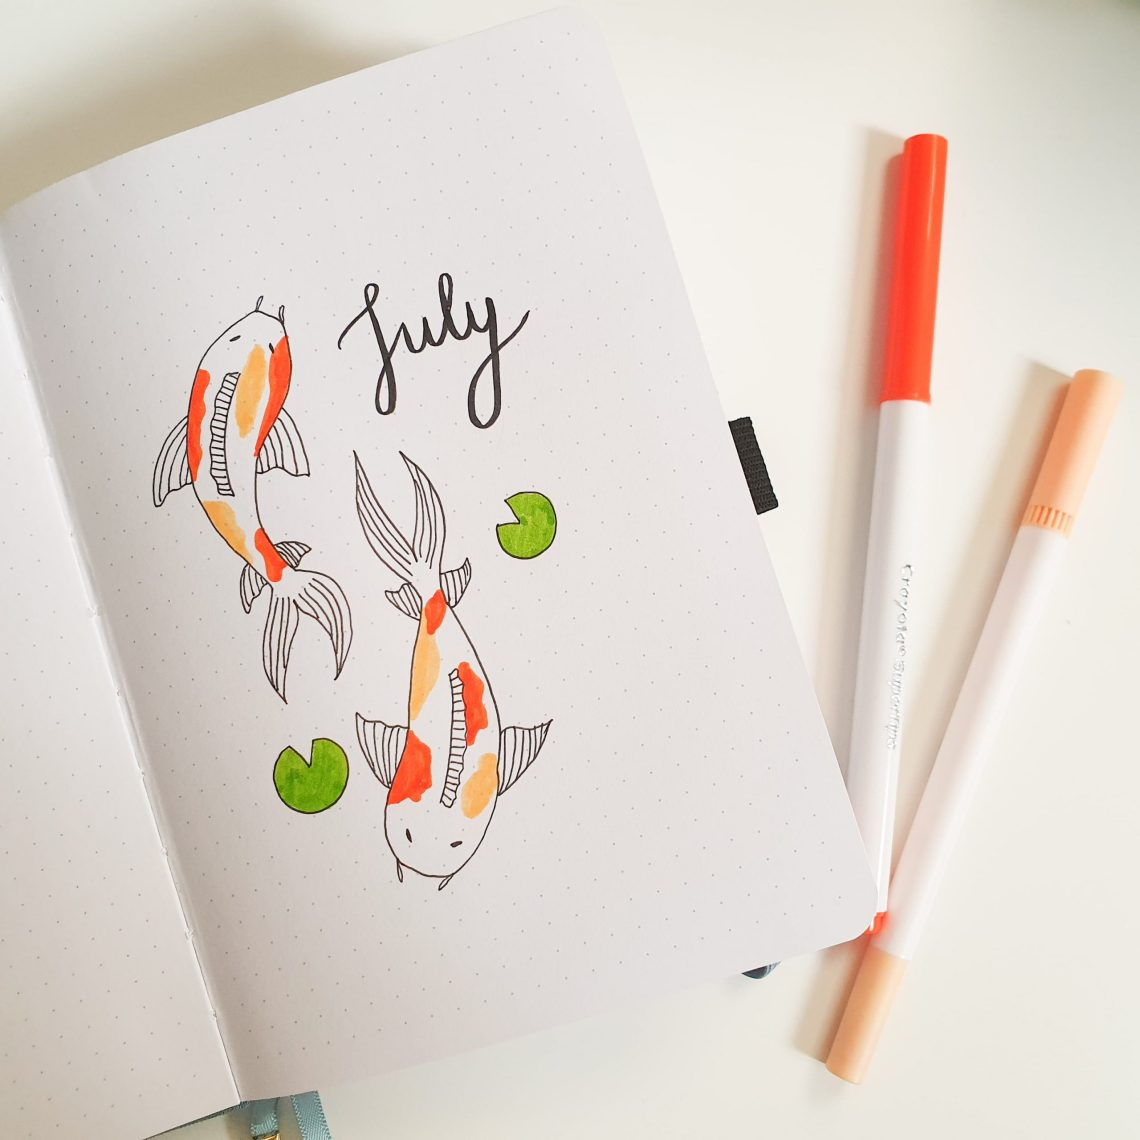 104458138 1531585273689691 8665314928933141508 n scaled - Plan With Me | New Bookish Bullet Journal & July 2020 Spreads!